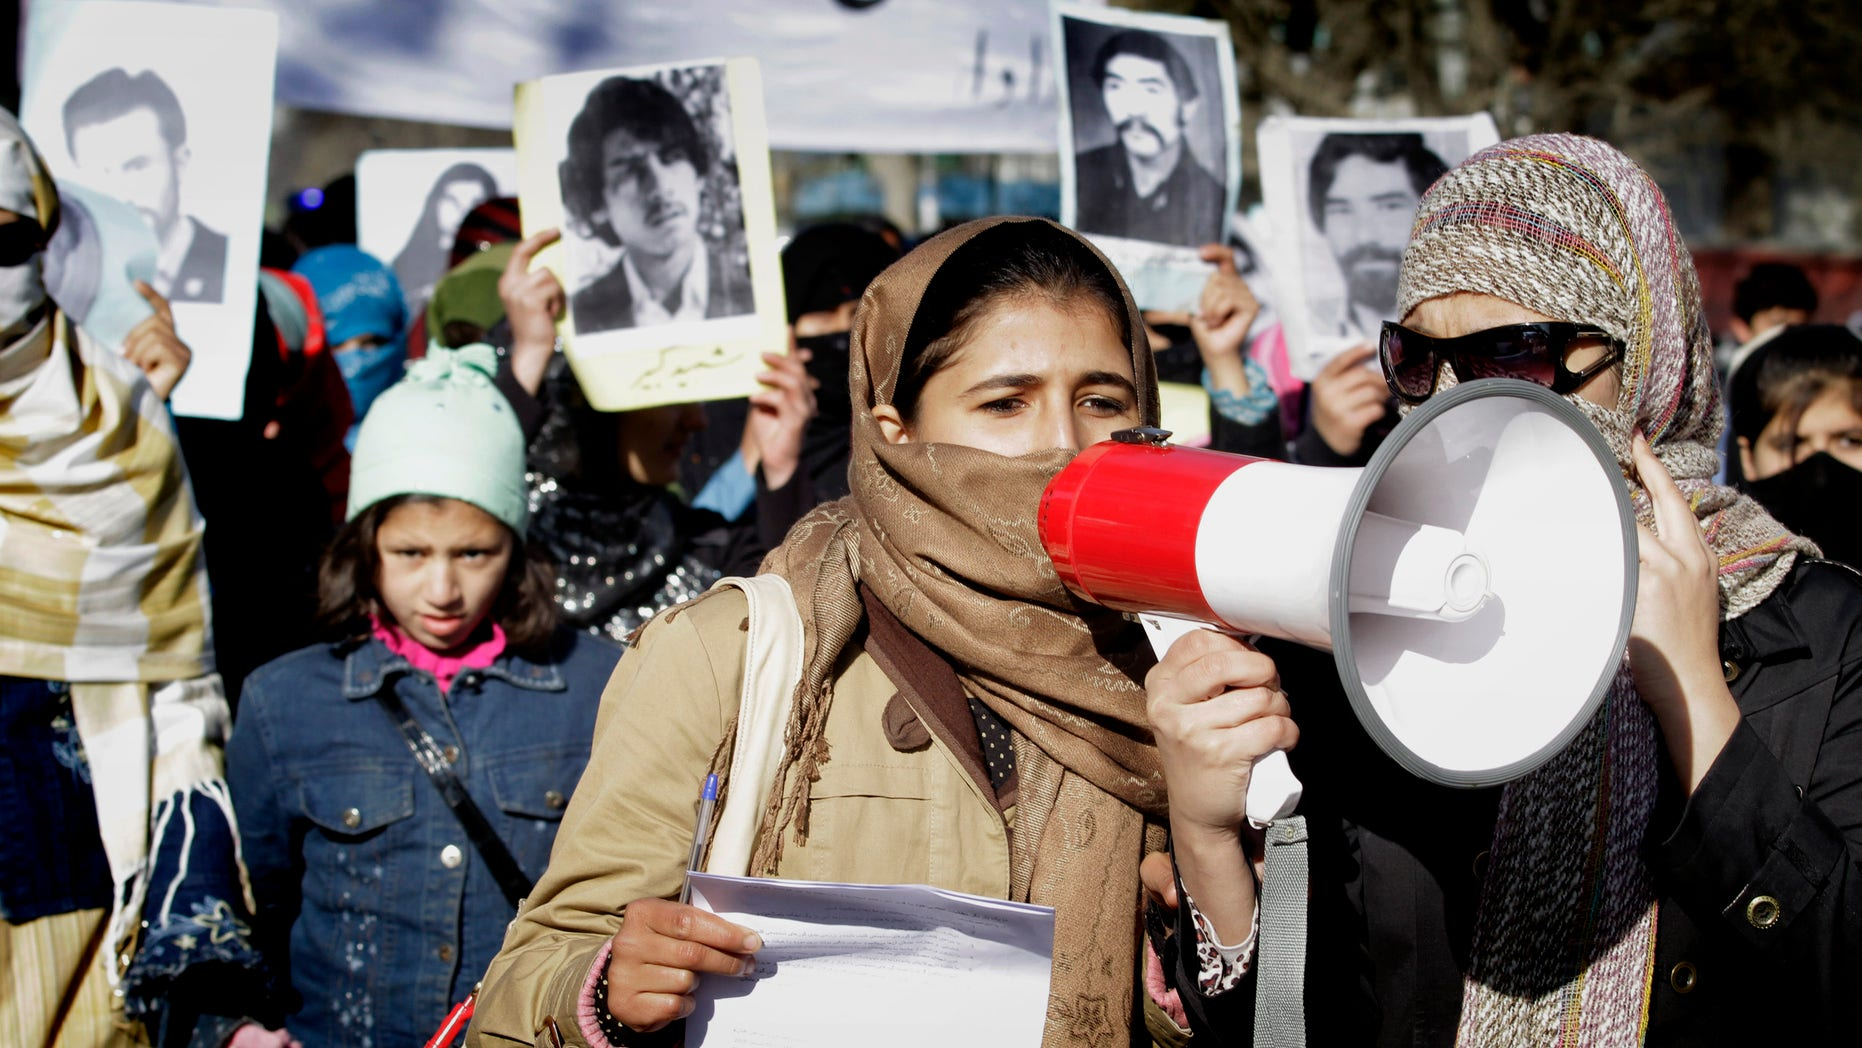 Dec. 10: Several hundred demonstrators shouted for justice and peace Friday in the Afghan capital, just hours before a suicide car bomber blew himself up in the east killing two civilians.